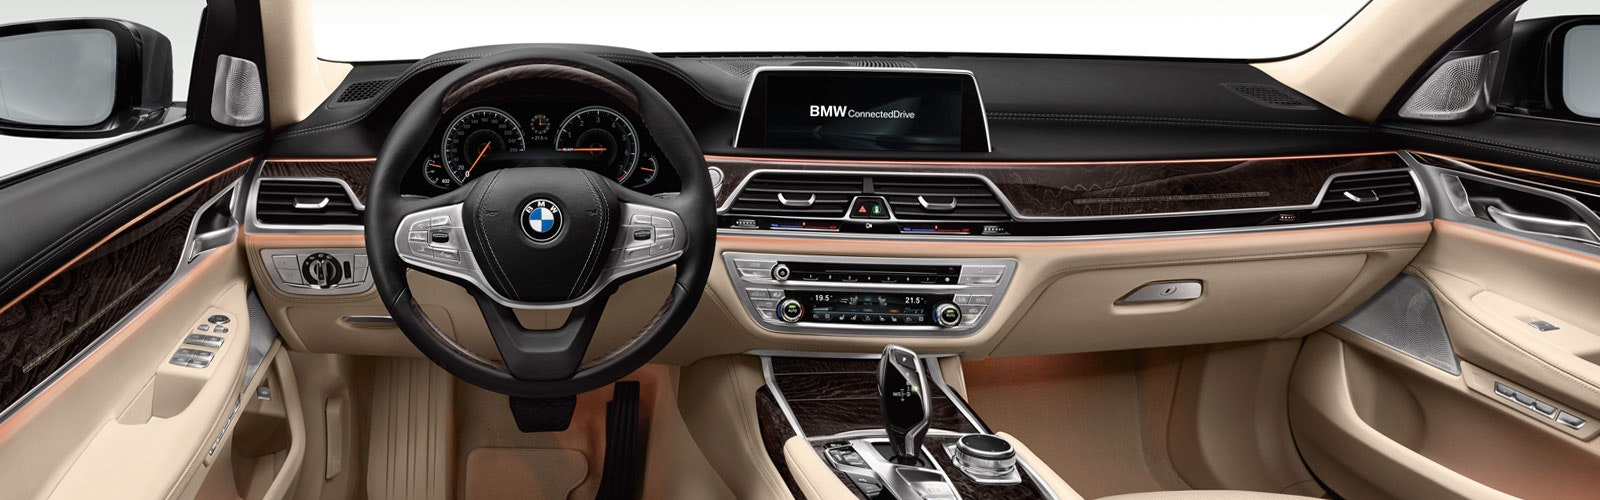 2017 Bmw 540i Interior Colors Skill Floor  U003e Credit To :  Https://skillzindia.com/2017 Bmw 540i Interior Colors/